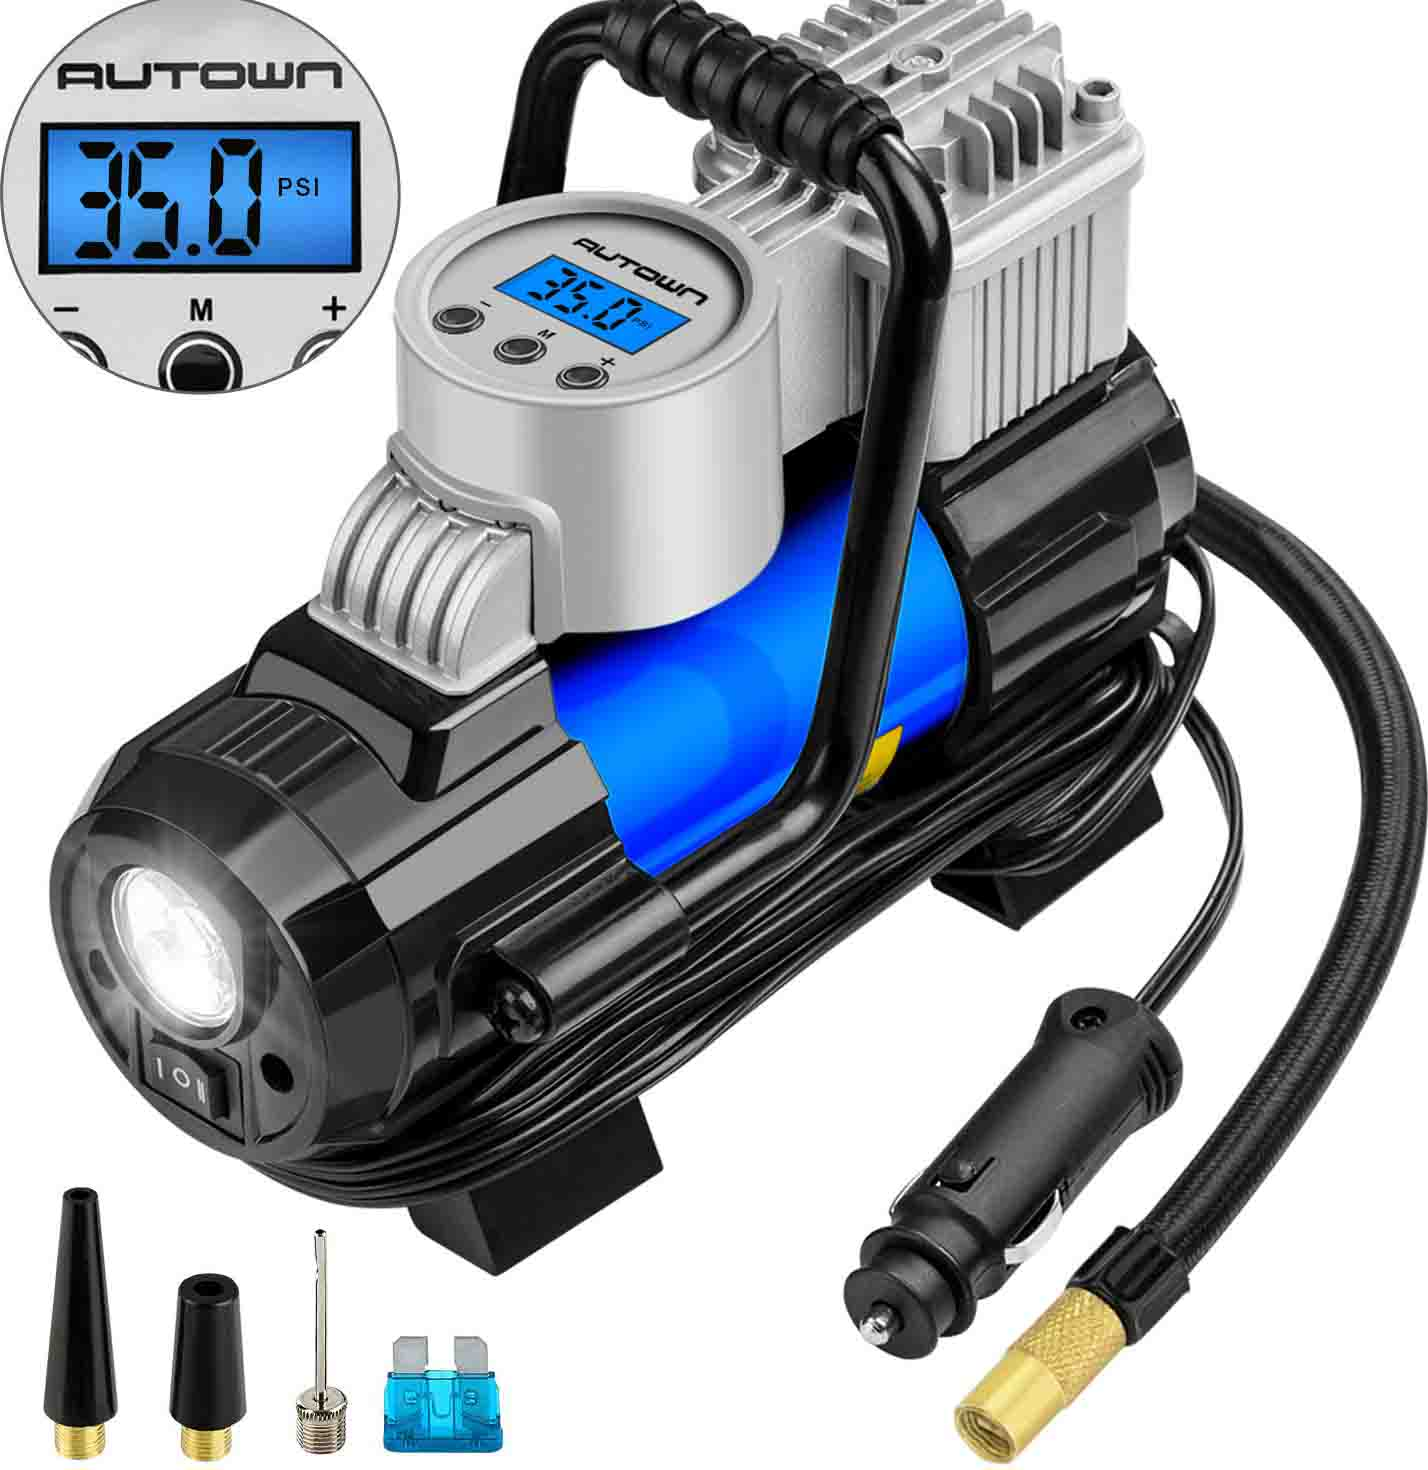 AUTOWN Air Compressor Pump reviews